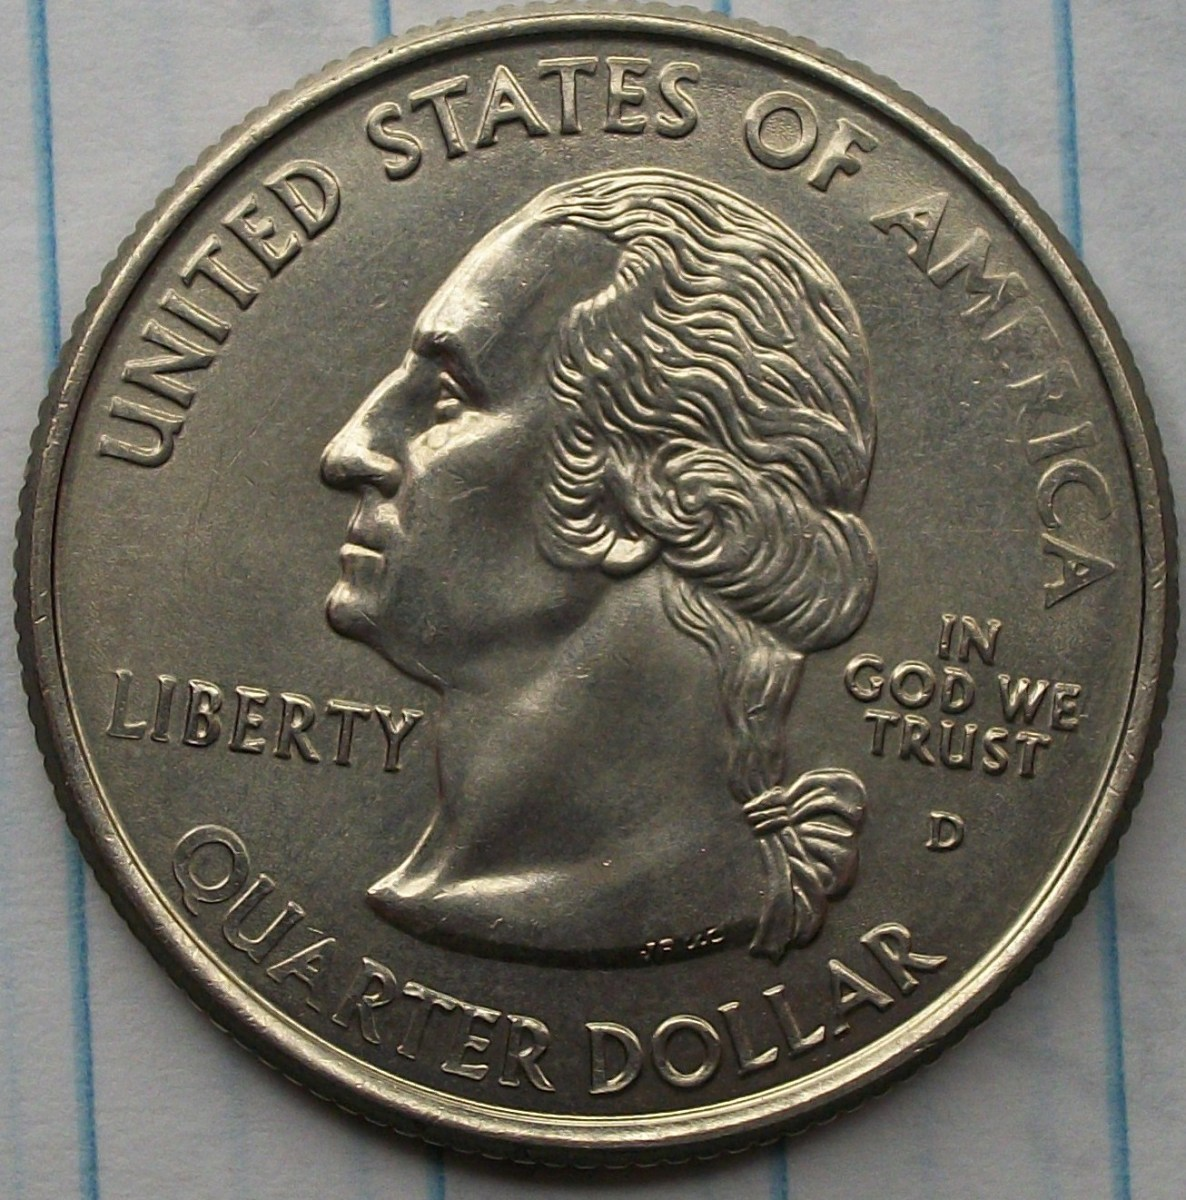 Obverse of a 2006D Nebraska Statehood Quarter Polished Die to point where part of the image appears lightly struck.